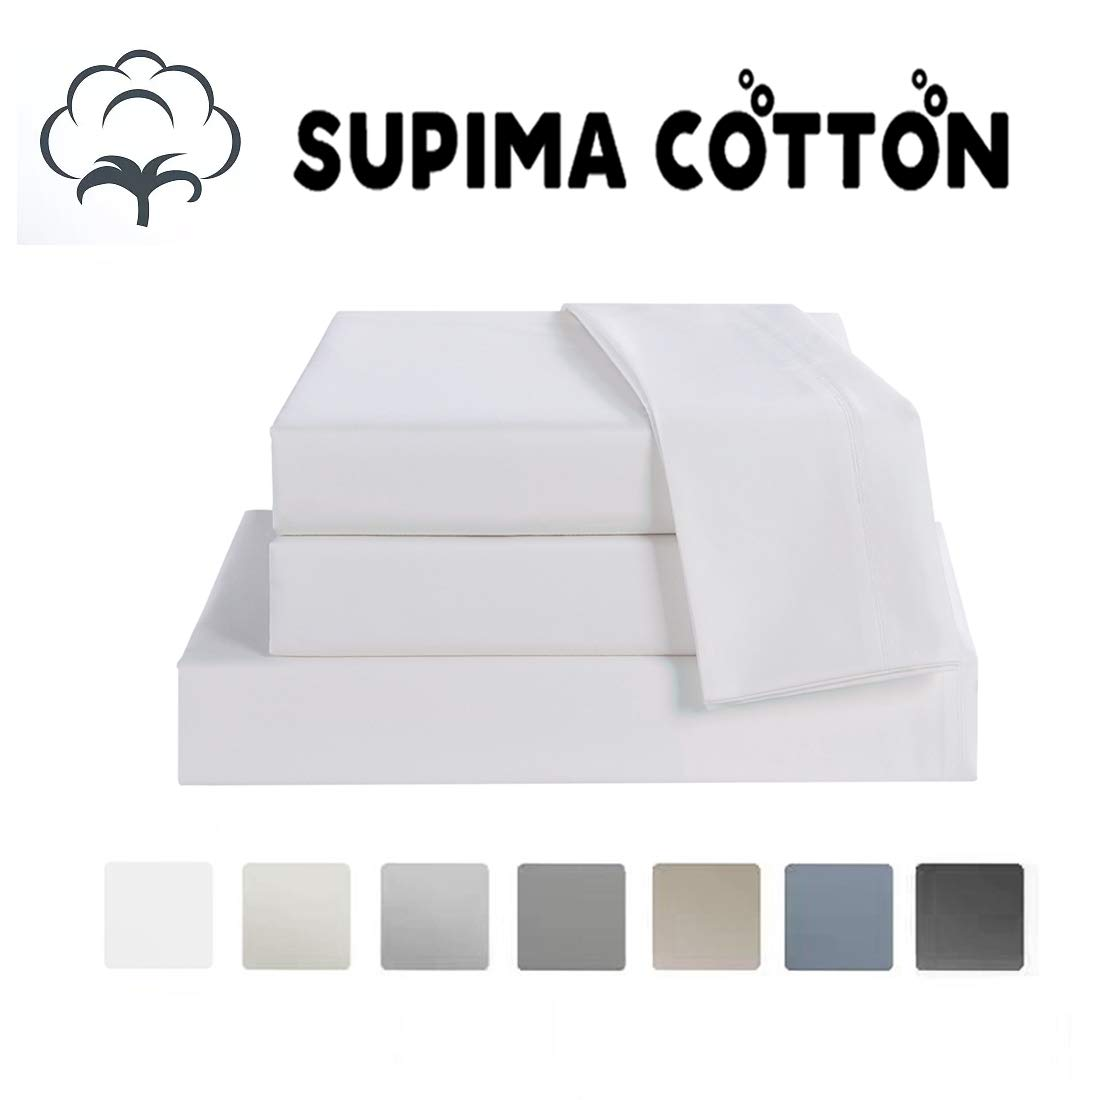 Bed Sheet Set Queen Size Sheets 4 Pieces, 600 Thread Count 100% Supima Cotton Sheets